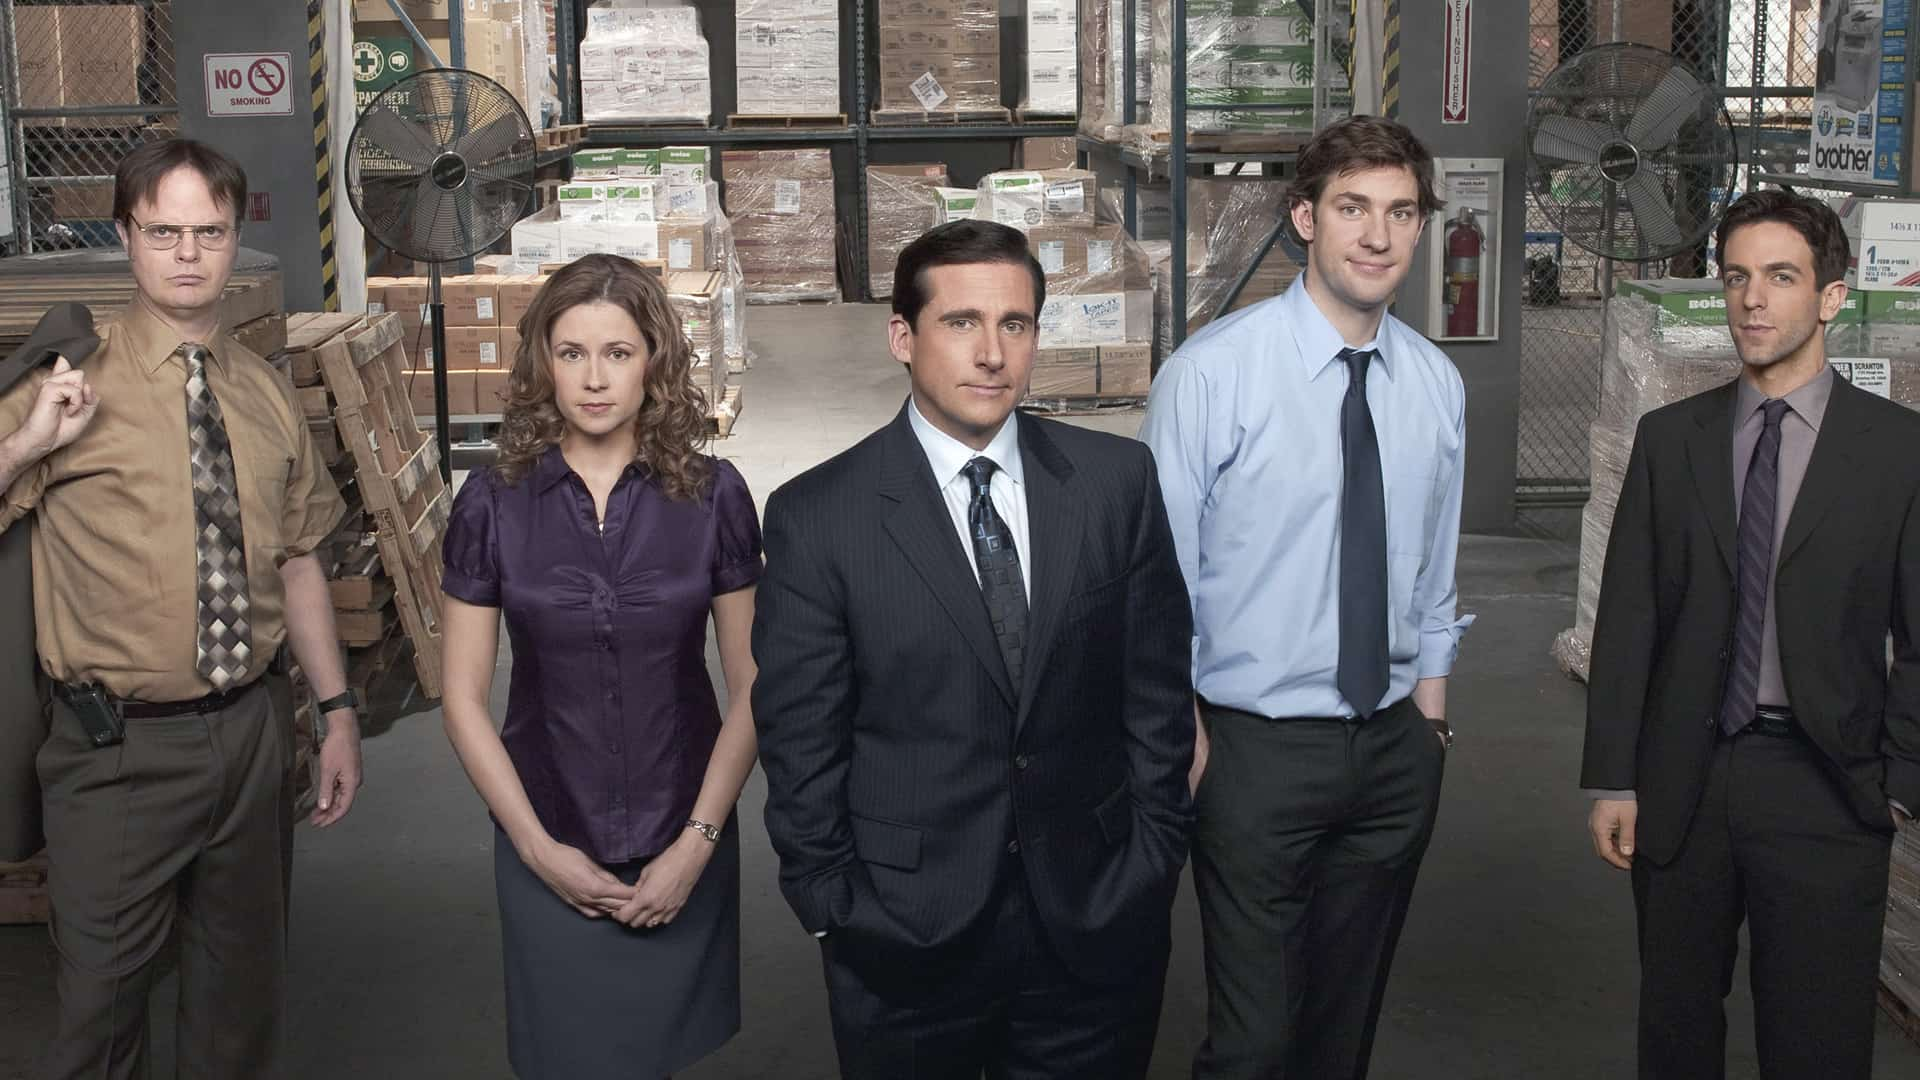 Is The Office Cast Better than the Parks and Recreation Cast?